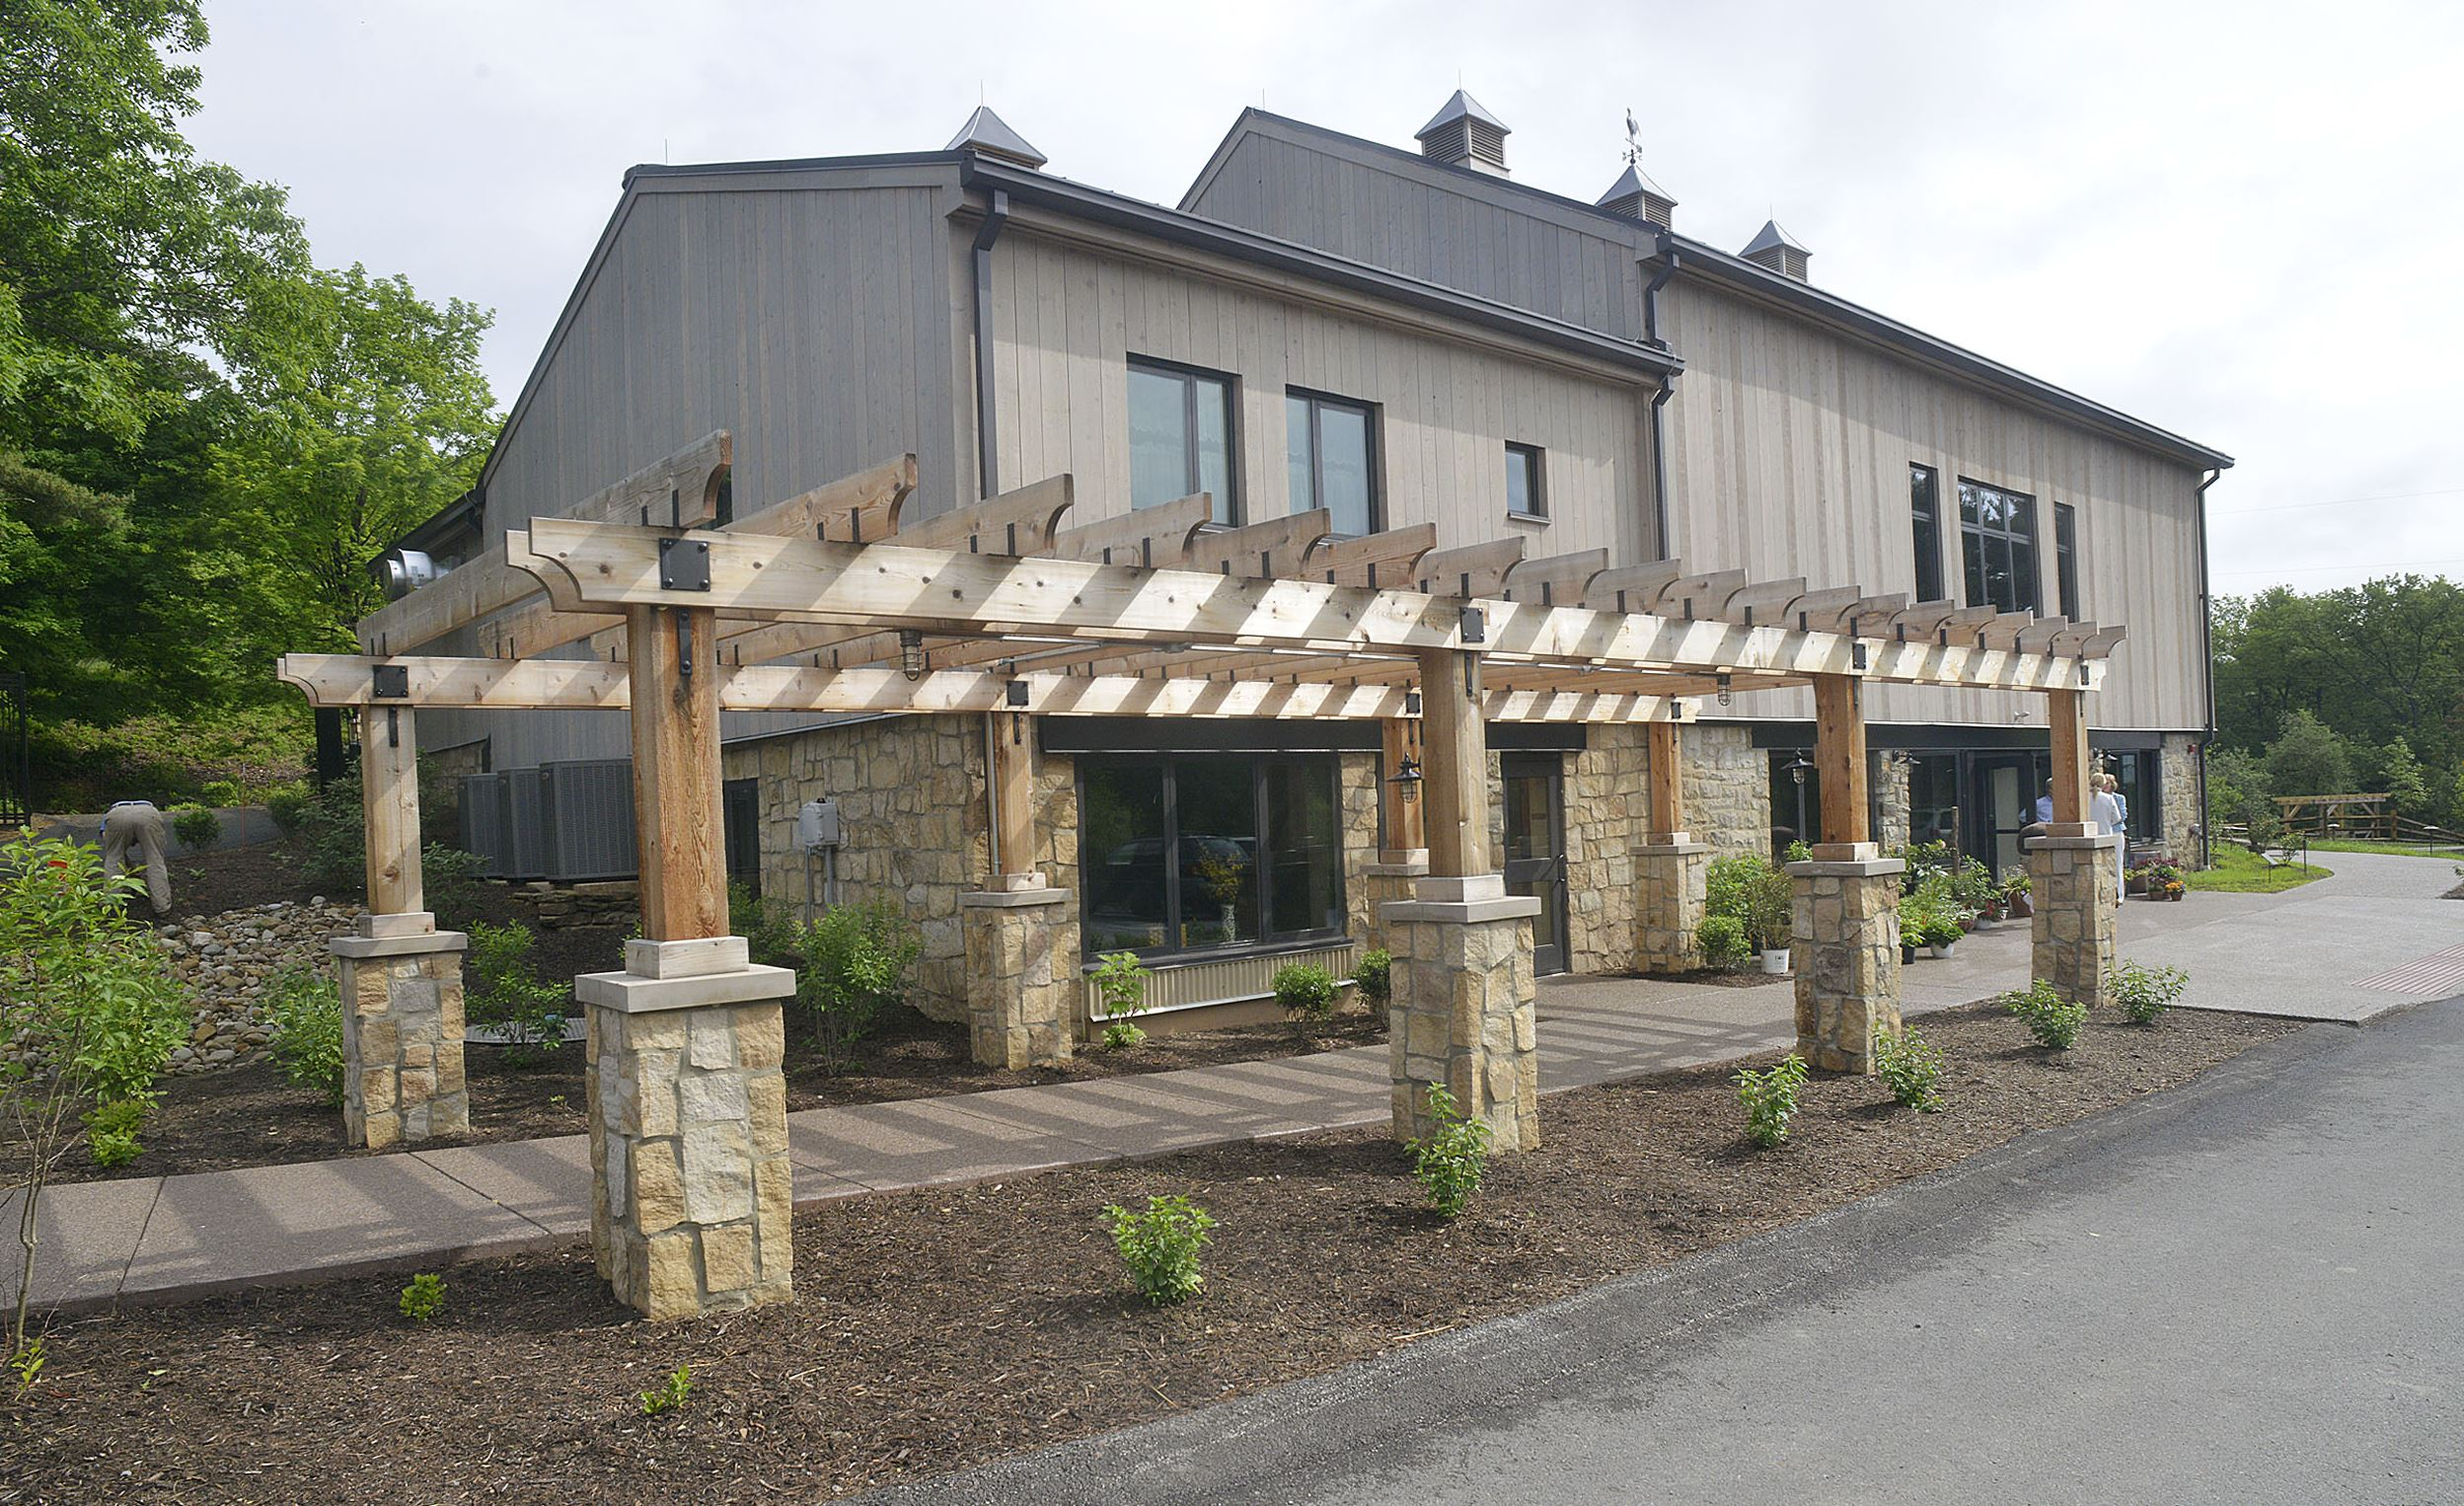 20150527lralicewatersmag05-4 The Ada and George Davidson Event and Culinary Center, a newly restored 1870s barn at the Pittsburgh Botanic Garden in Oakdale, will be the site of the Botanic Garden's annual fundraiser on Sept. 12, a tribute to Alice Waters.